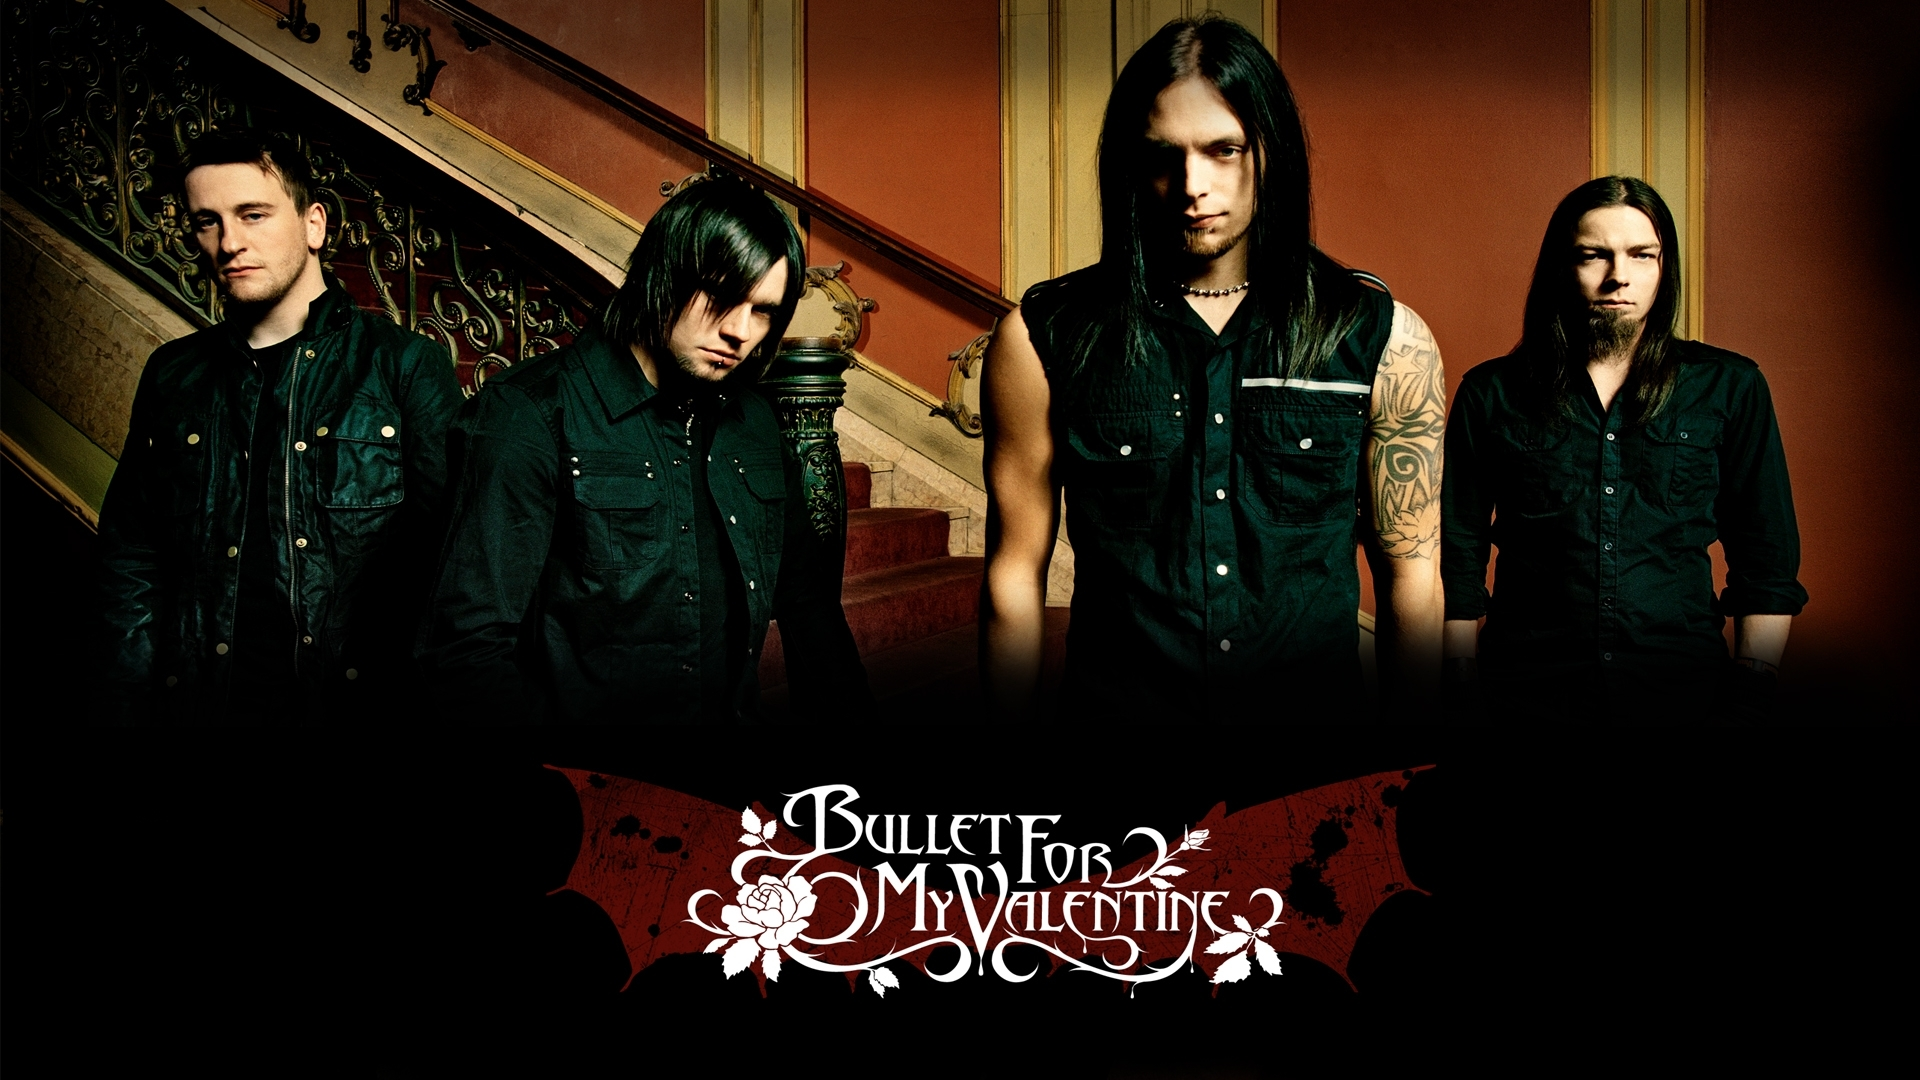 bullet for my valentine full hd wallpaper and background image